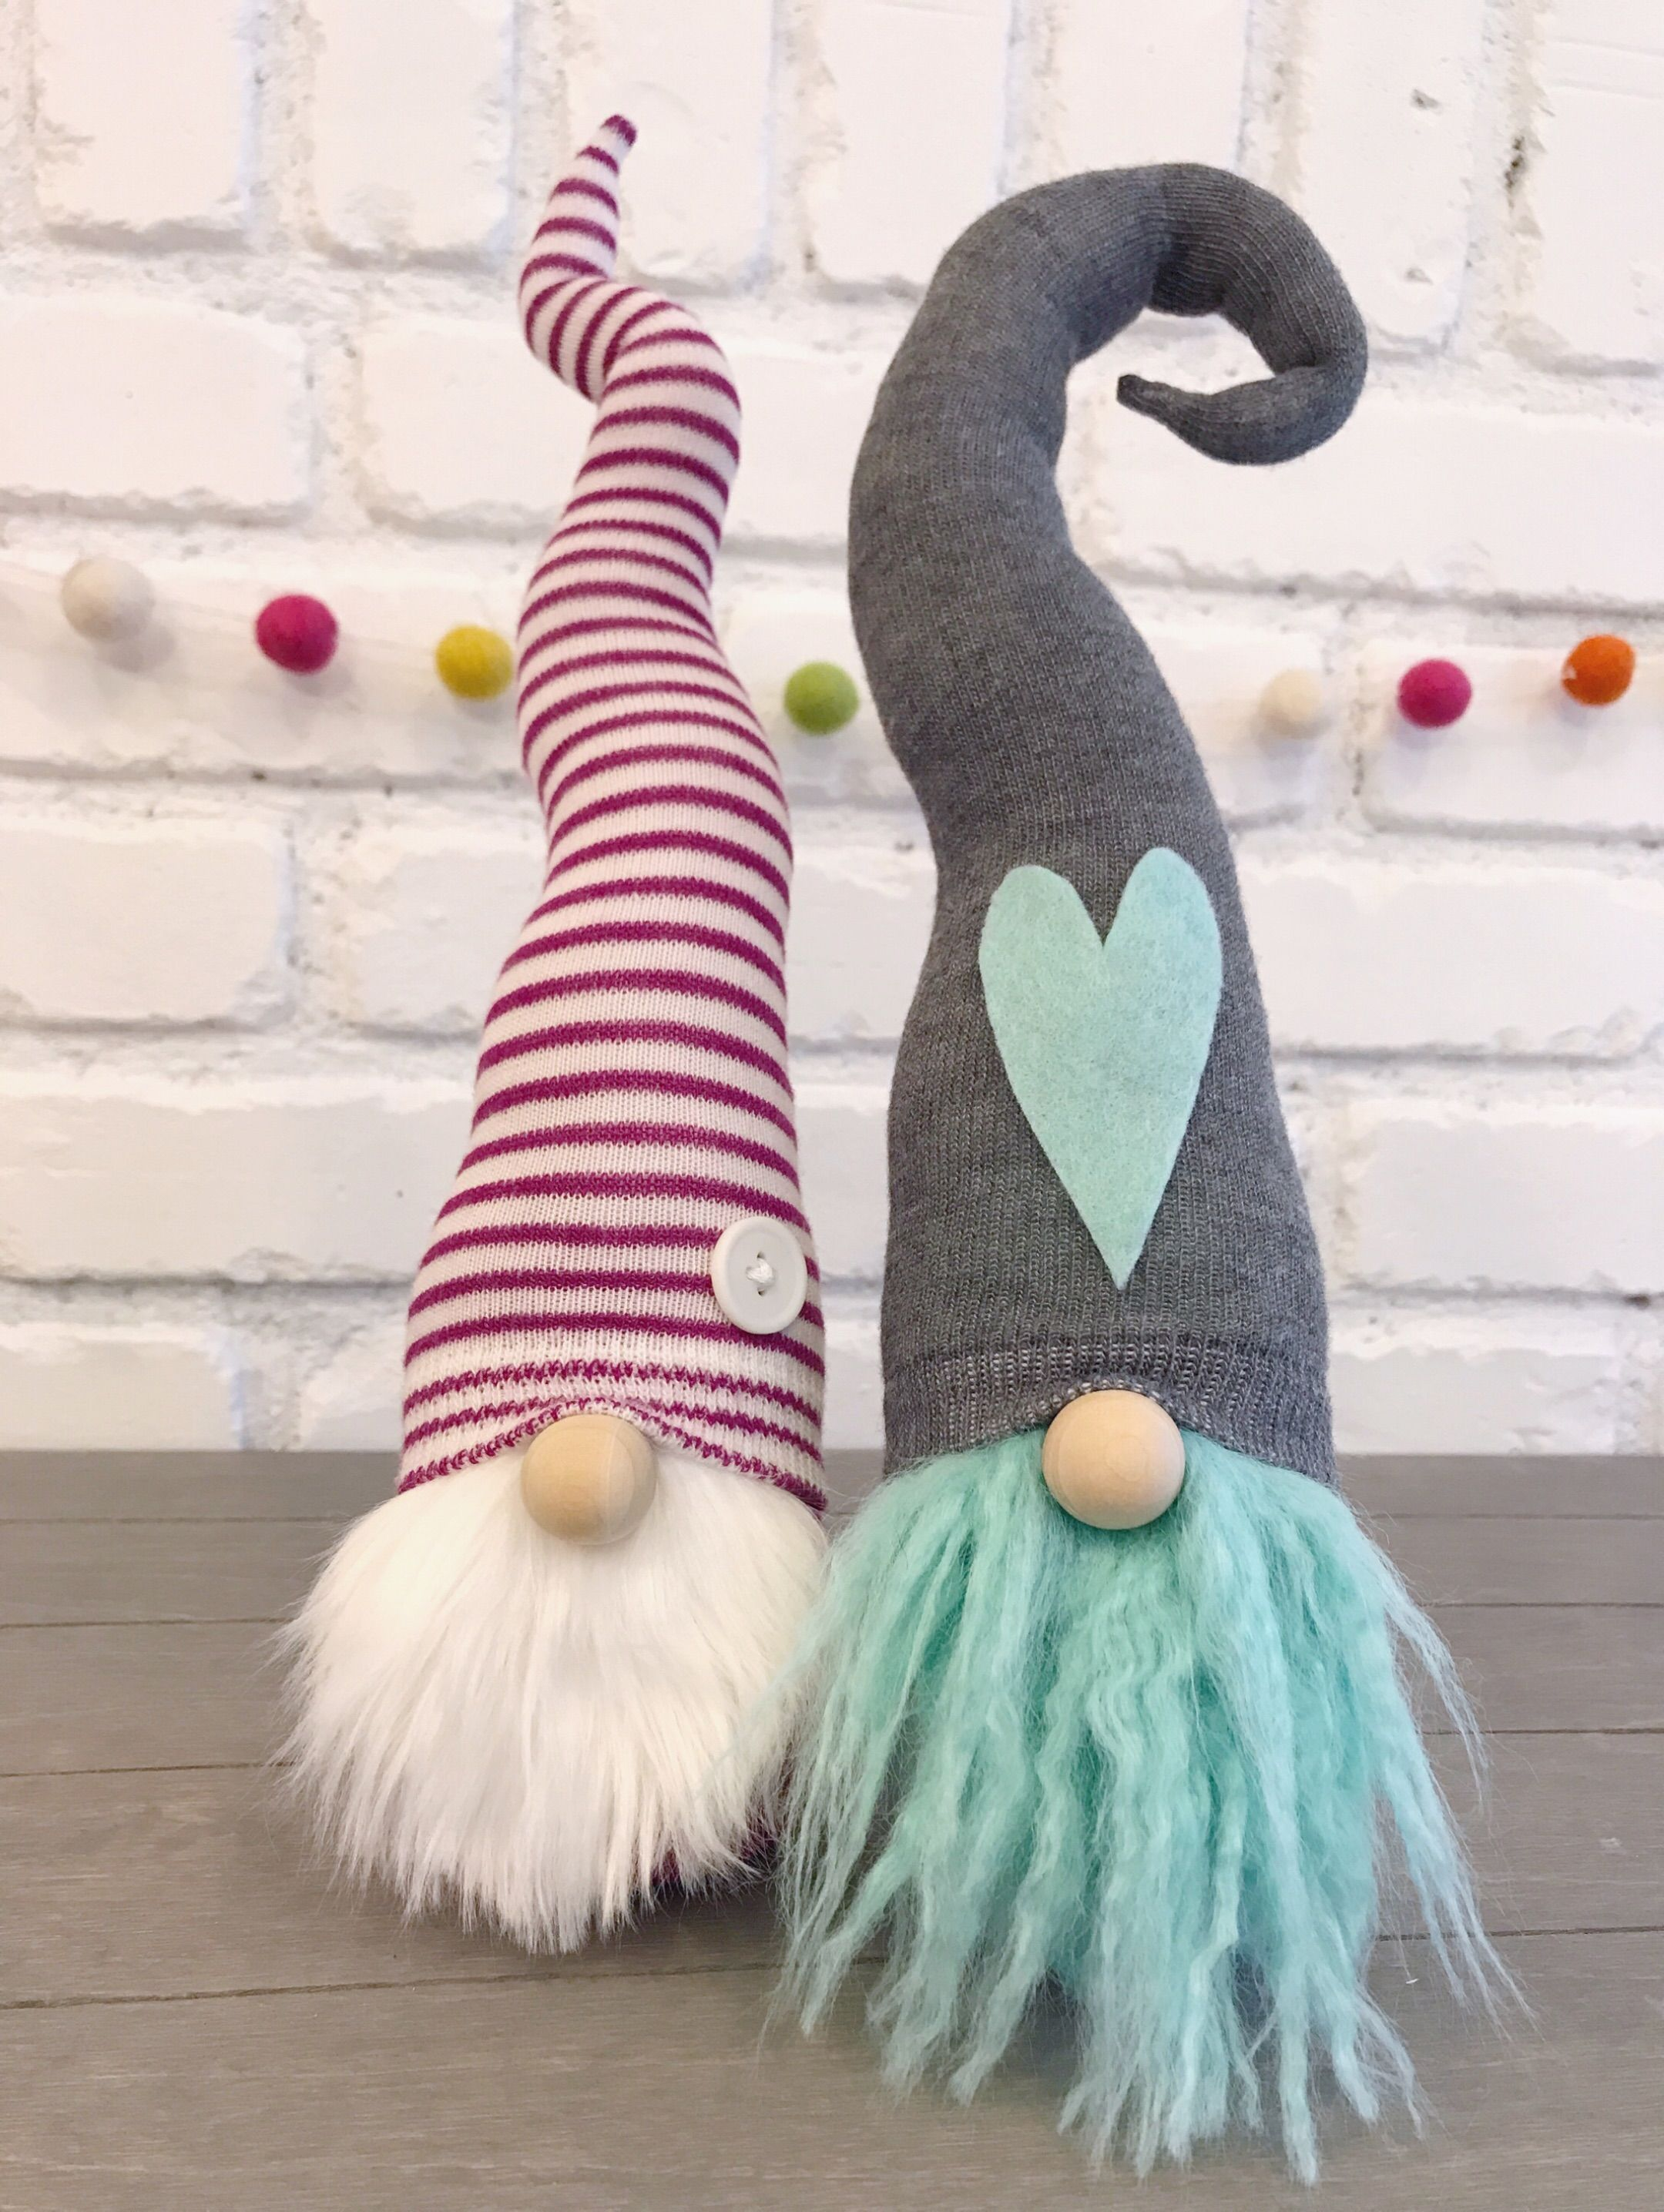 Adorable gnomes for any occasion. Find us at www.homesweetgnome.com. Sign up for our email list for exclusive subscriber only gnome drops. #christmasgnomes